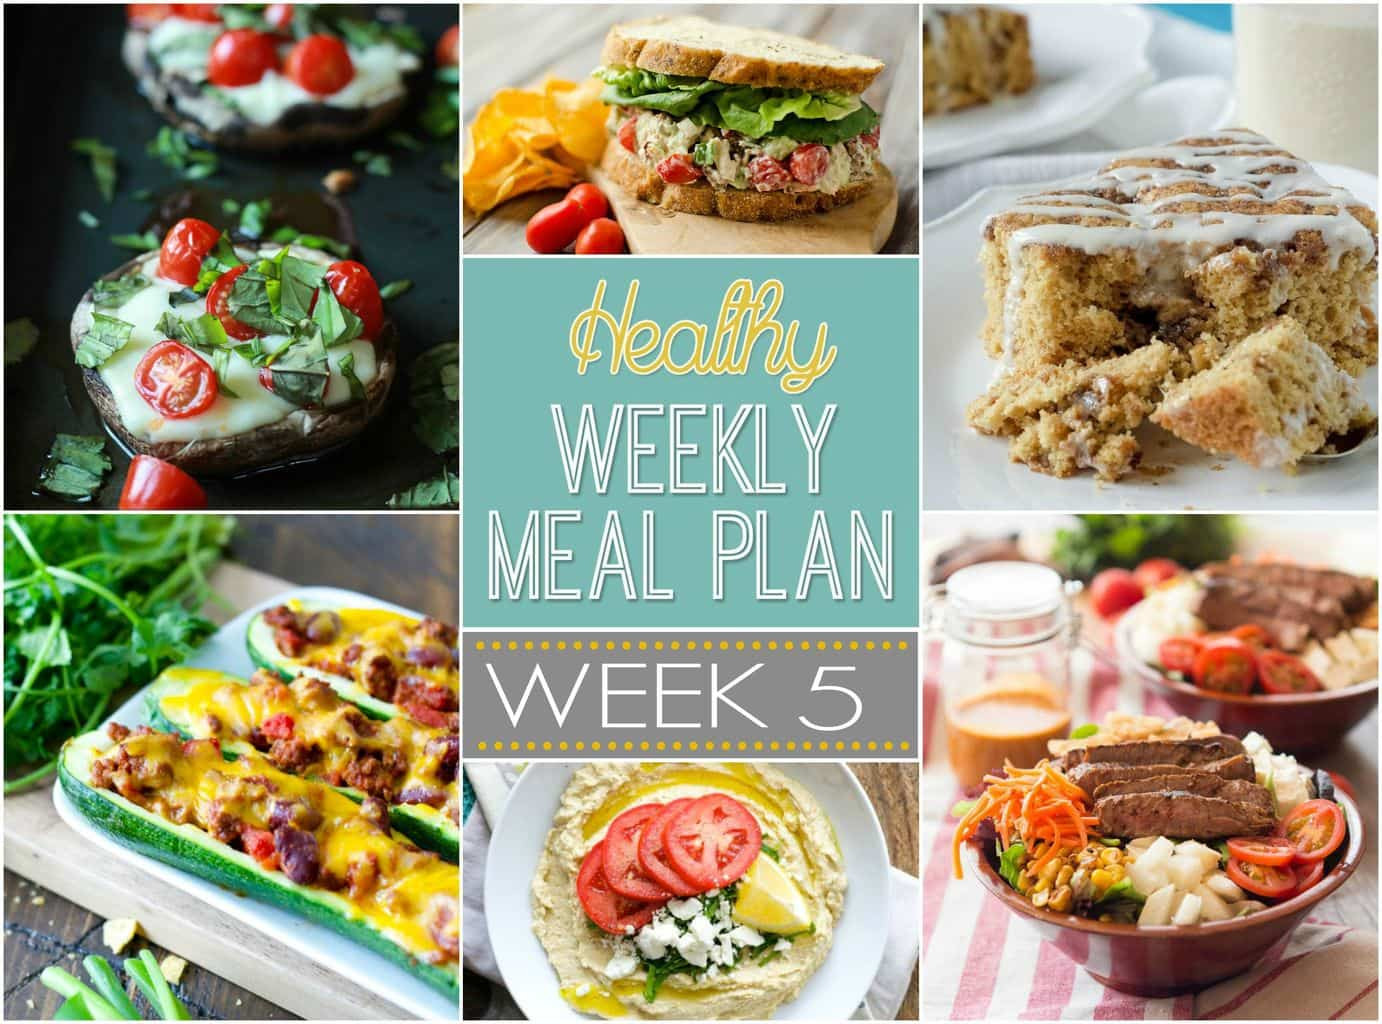 Healthy Breakfast For Dinner  Healthy Weekly Meal Plan 5 Yummy Healthy Easy